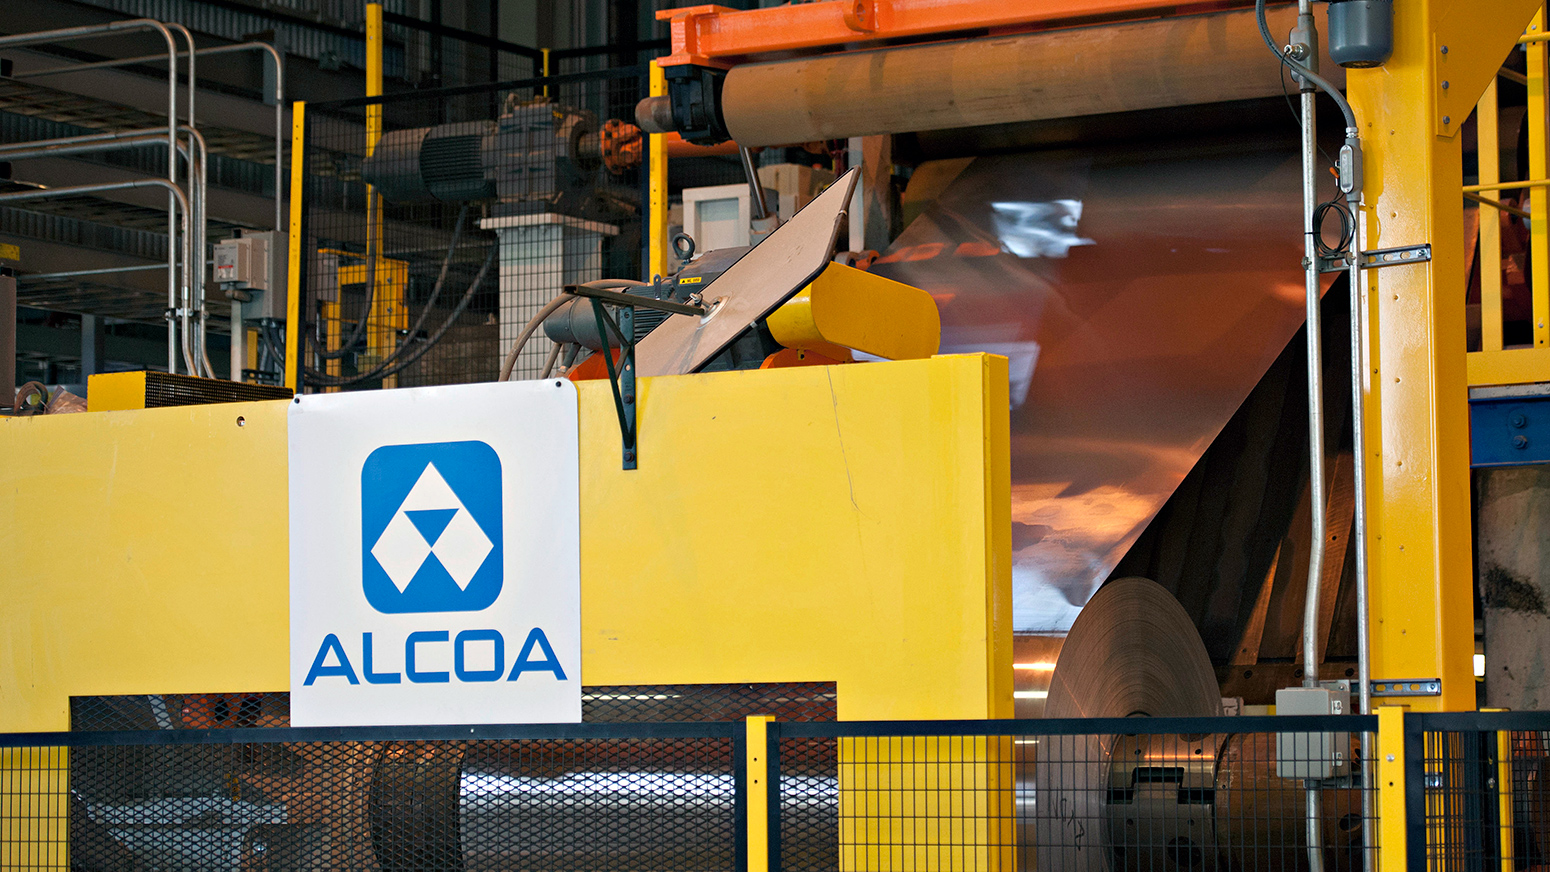 Alcoa to roll $310 million into pension plans in 2019